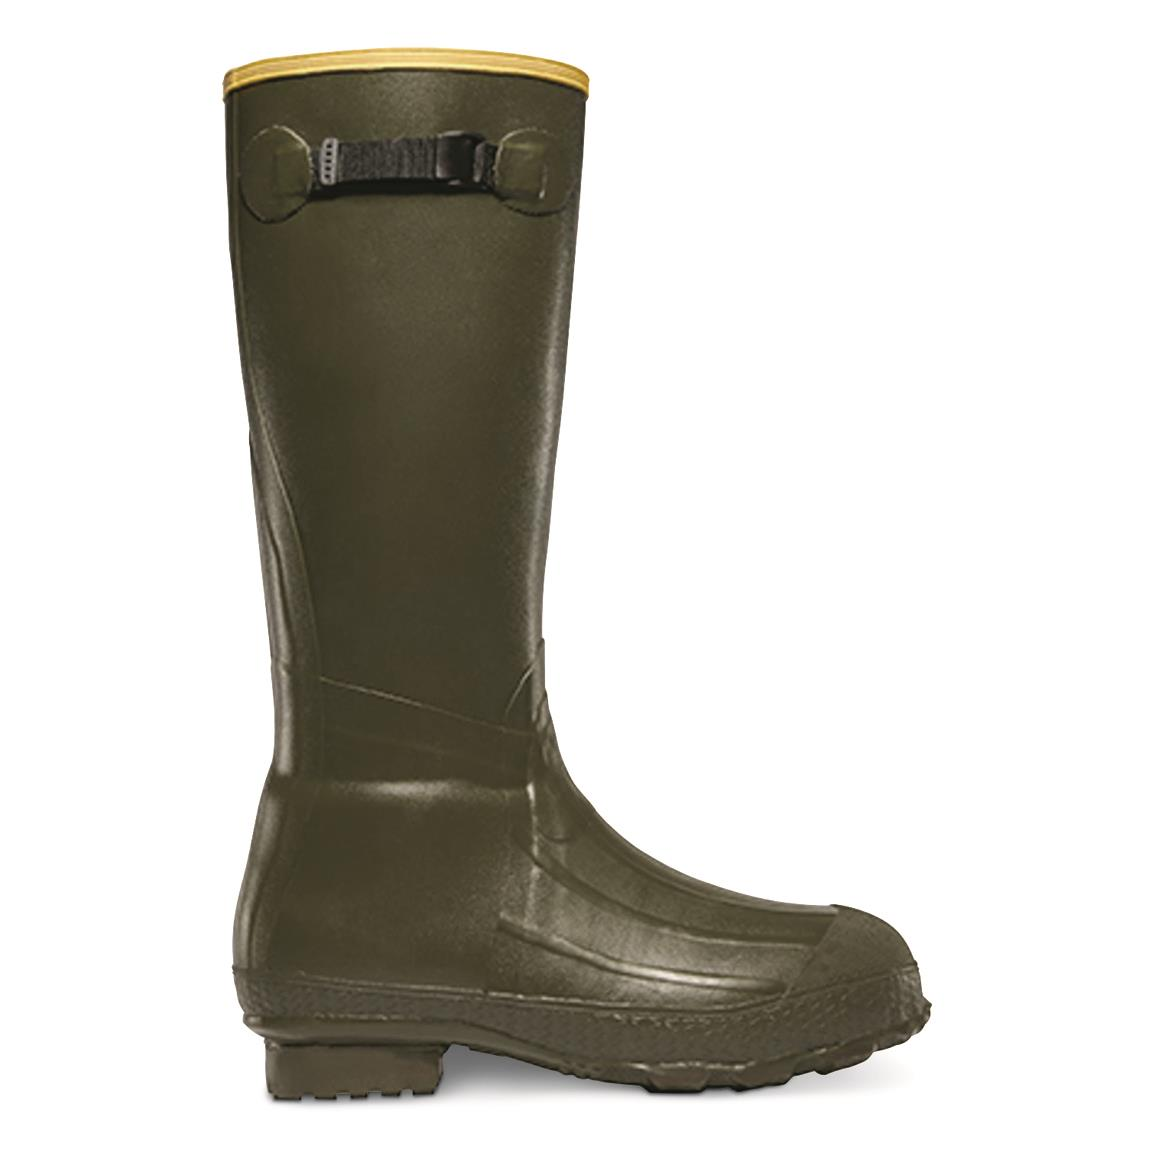 "LaCrosse Men's Burly Classic 18"" Rubber Boots, Olive Drab"